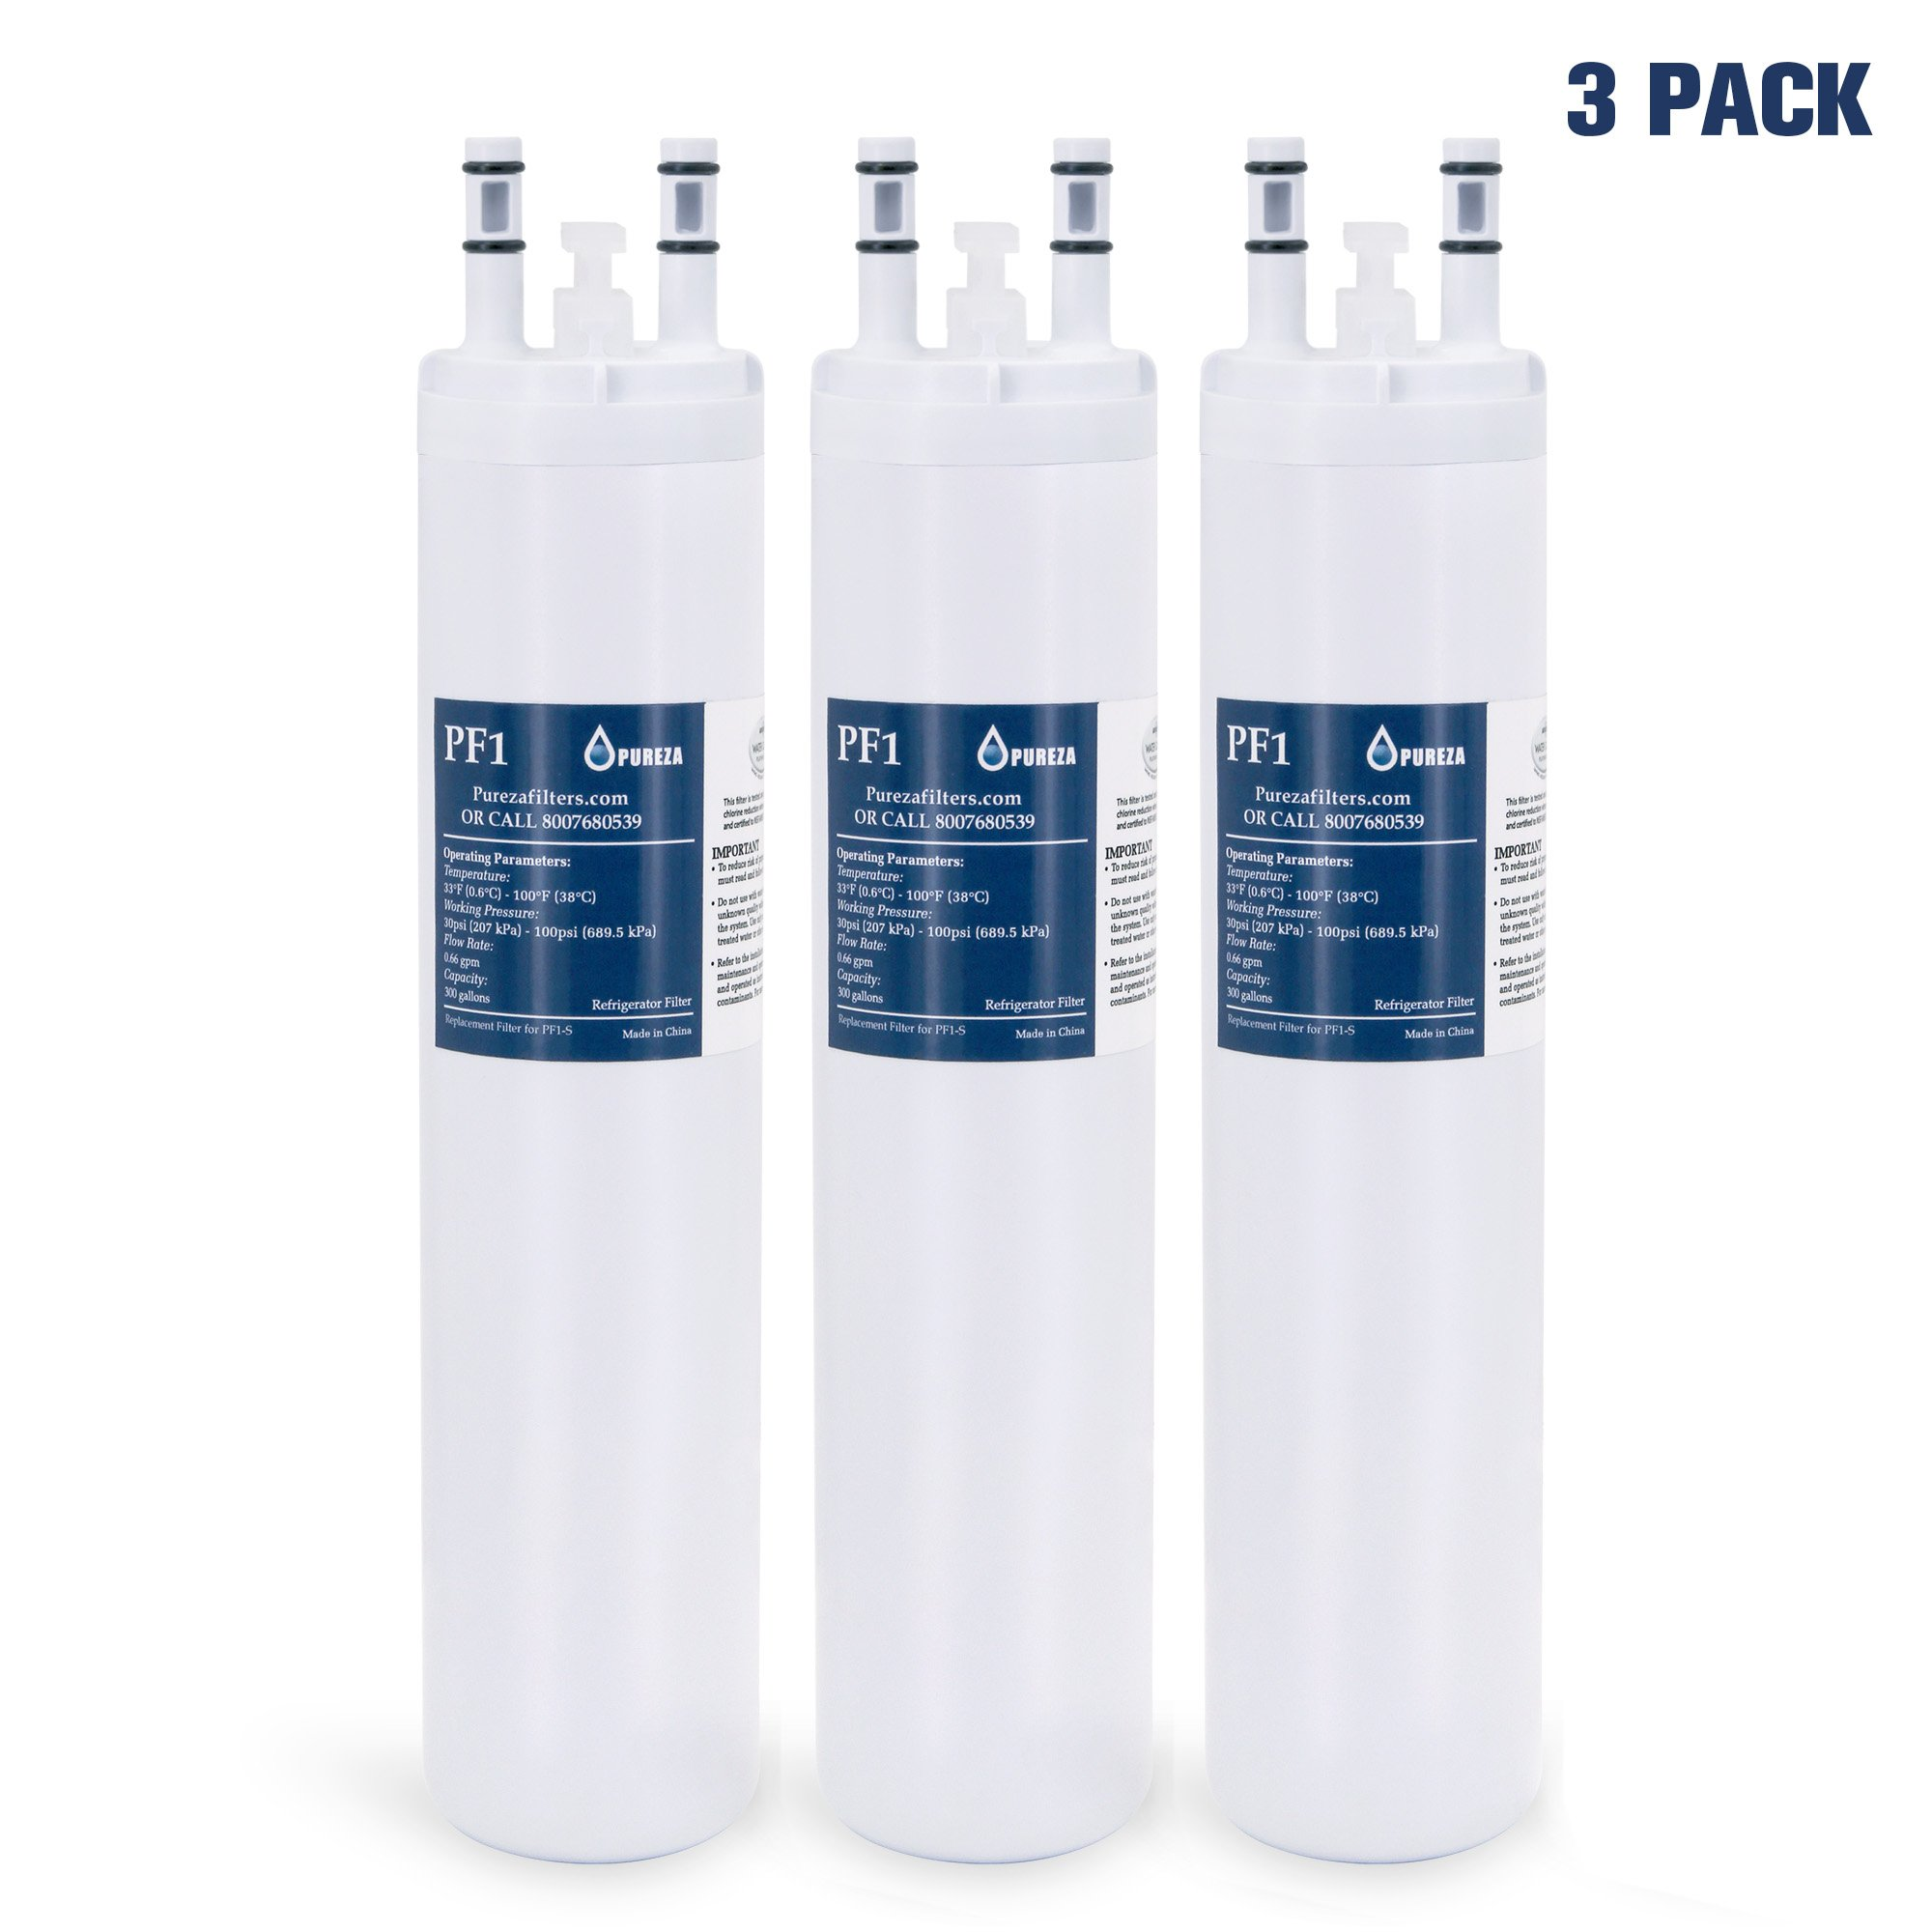 Pureza ULTRAWF Frigidaire Water Filter, PureSource Ultra, Frigidaire Compatible Cartridge For Frigidaire Refrigerators & Ice Makers-Compatible with Crystal ULTRAWF, Kenmore 46-9999, 3 Packs